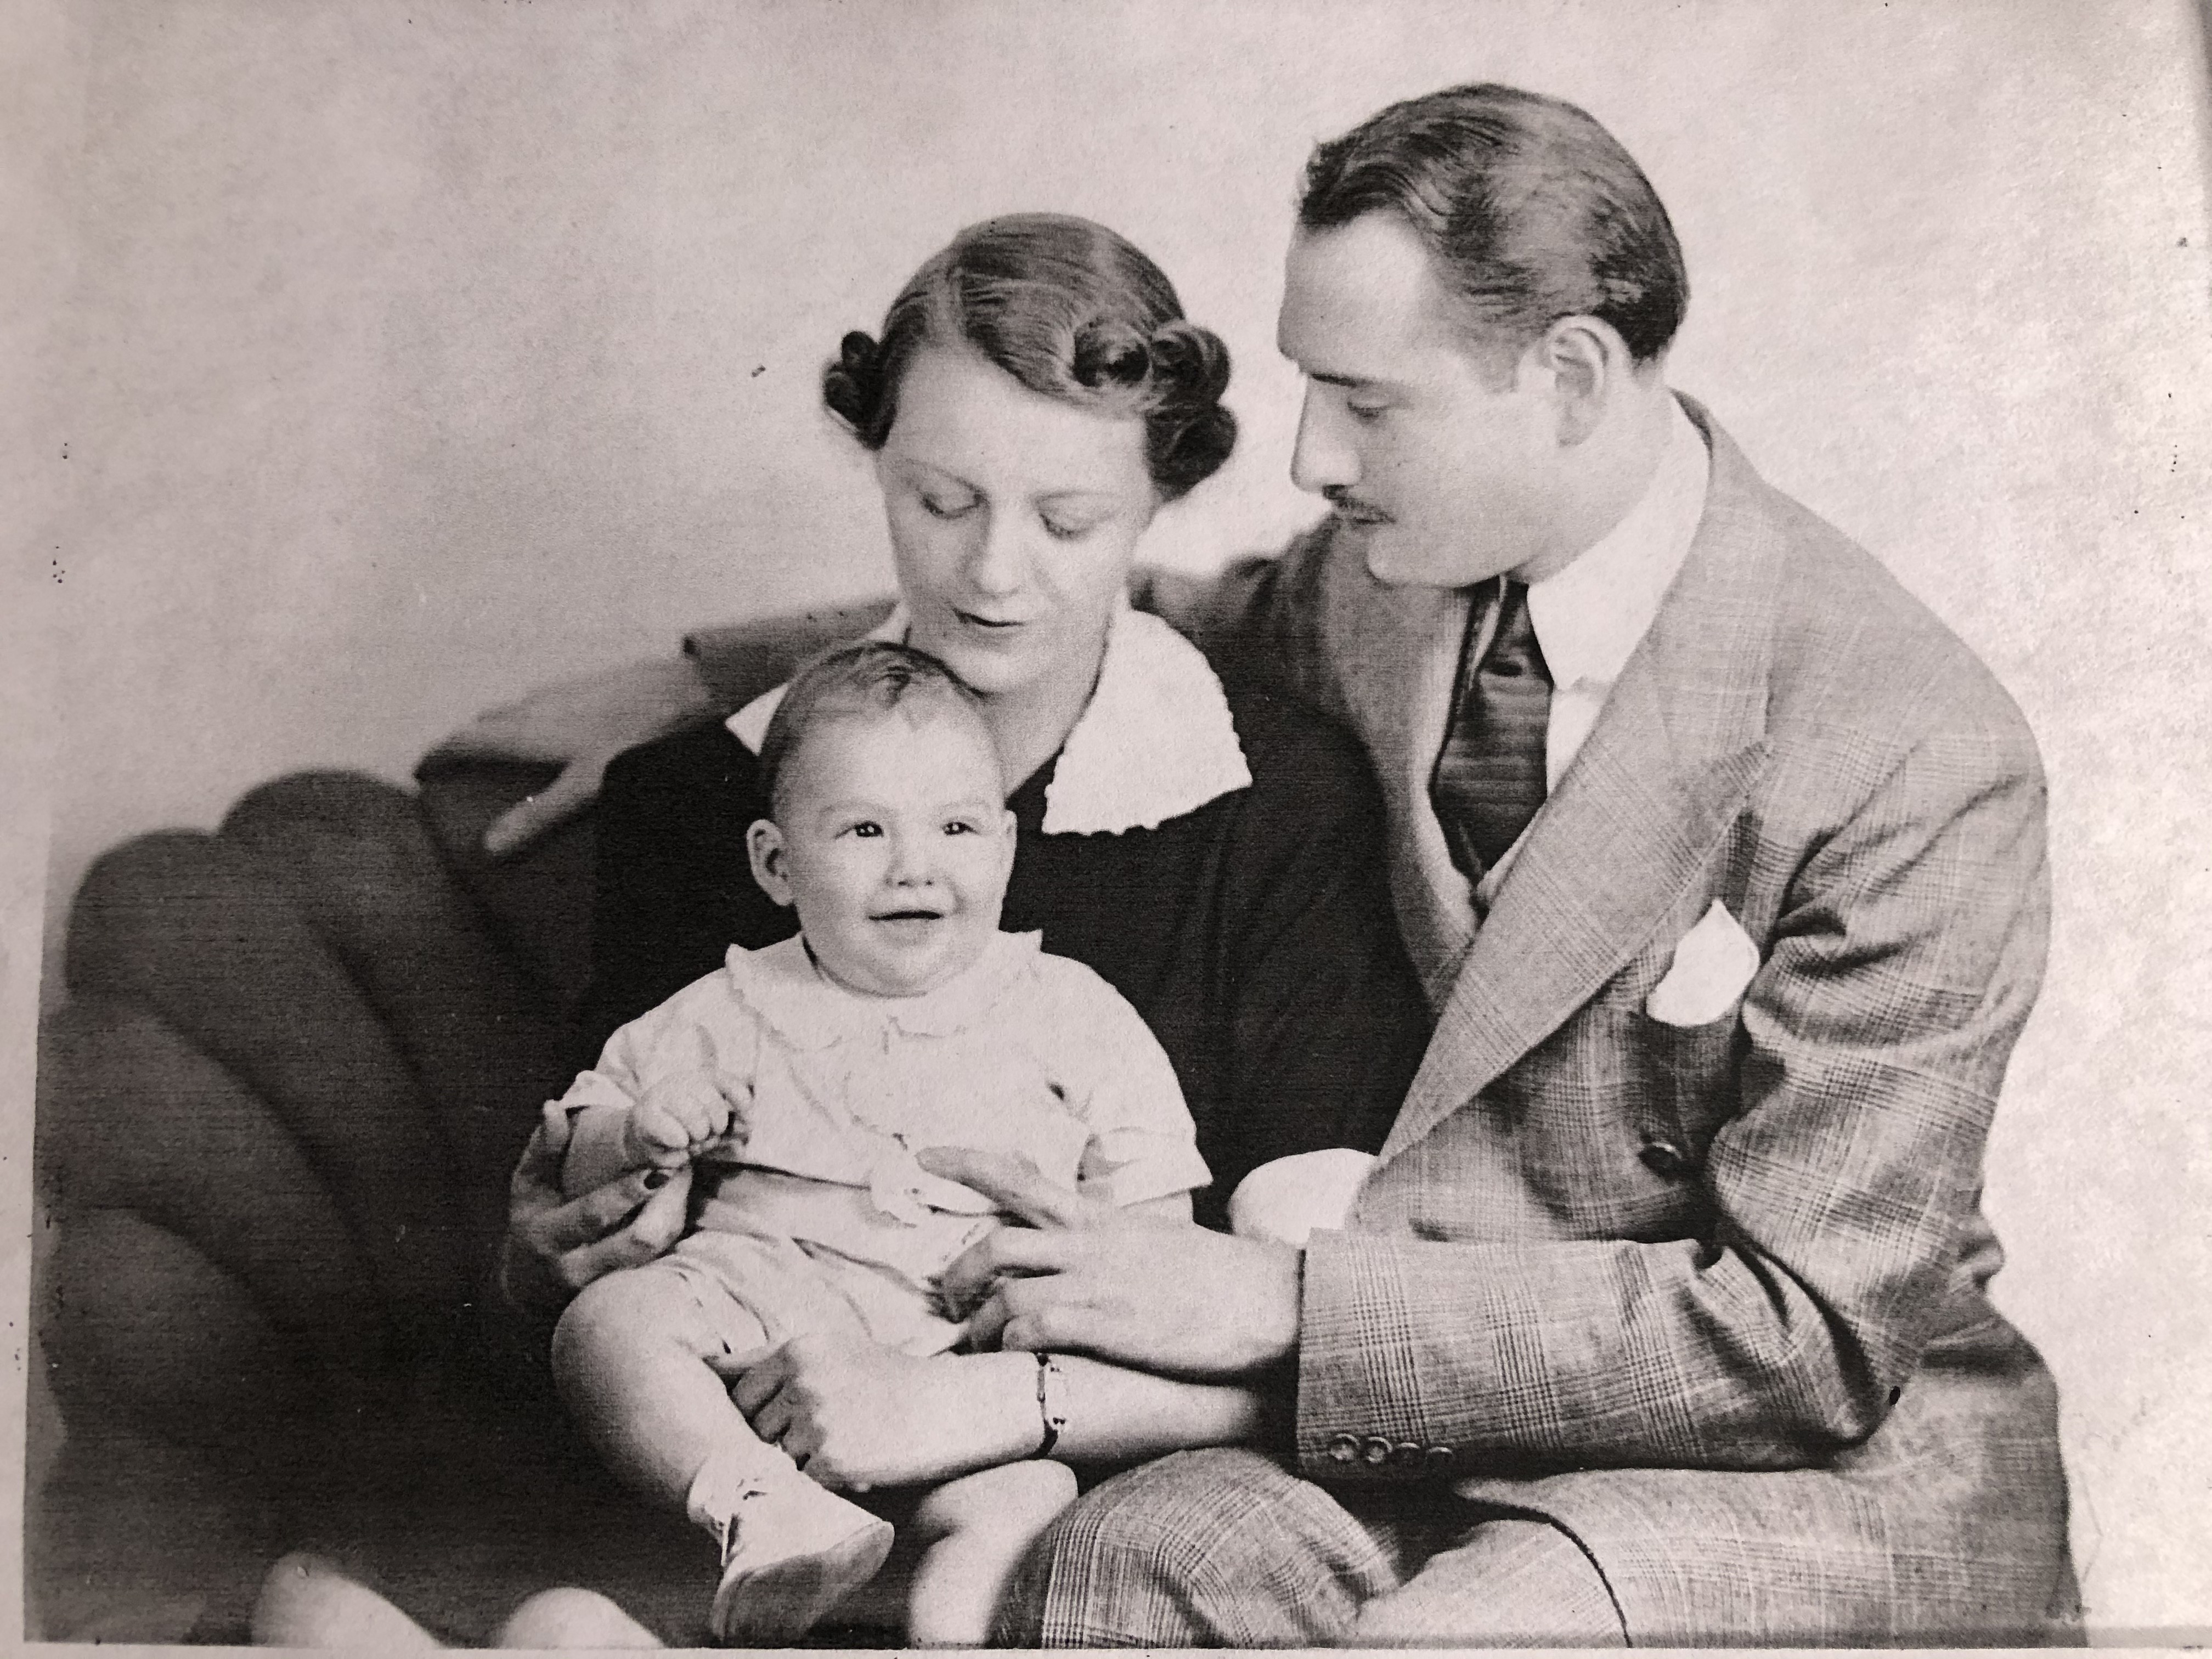 Arnauld as an infant, held by his parents, Catherine and Antone Scafidi